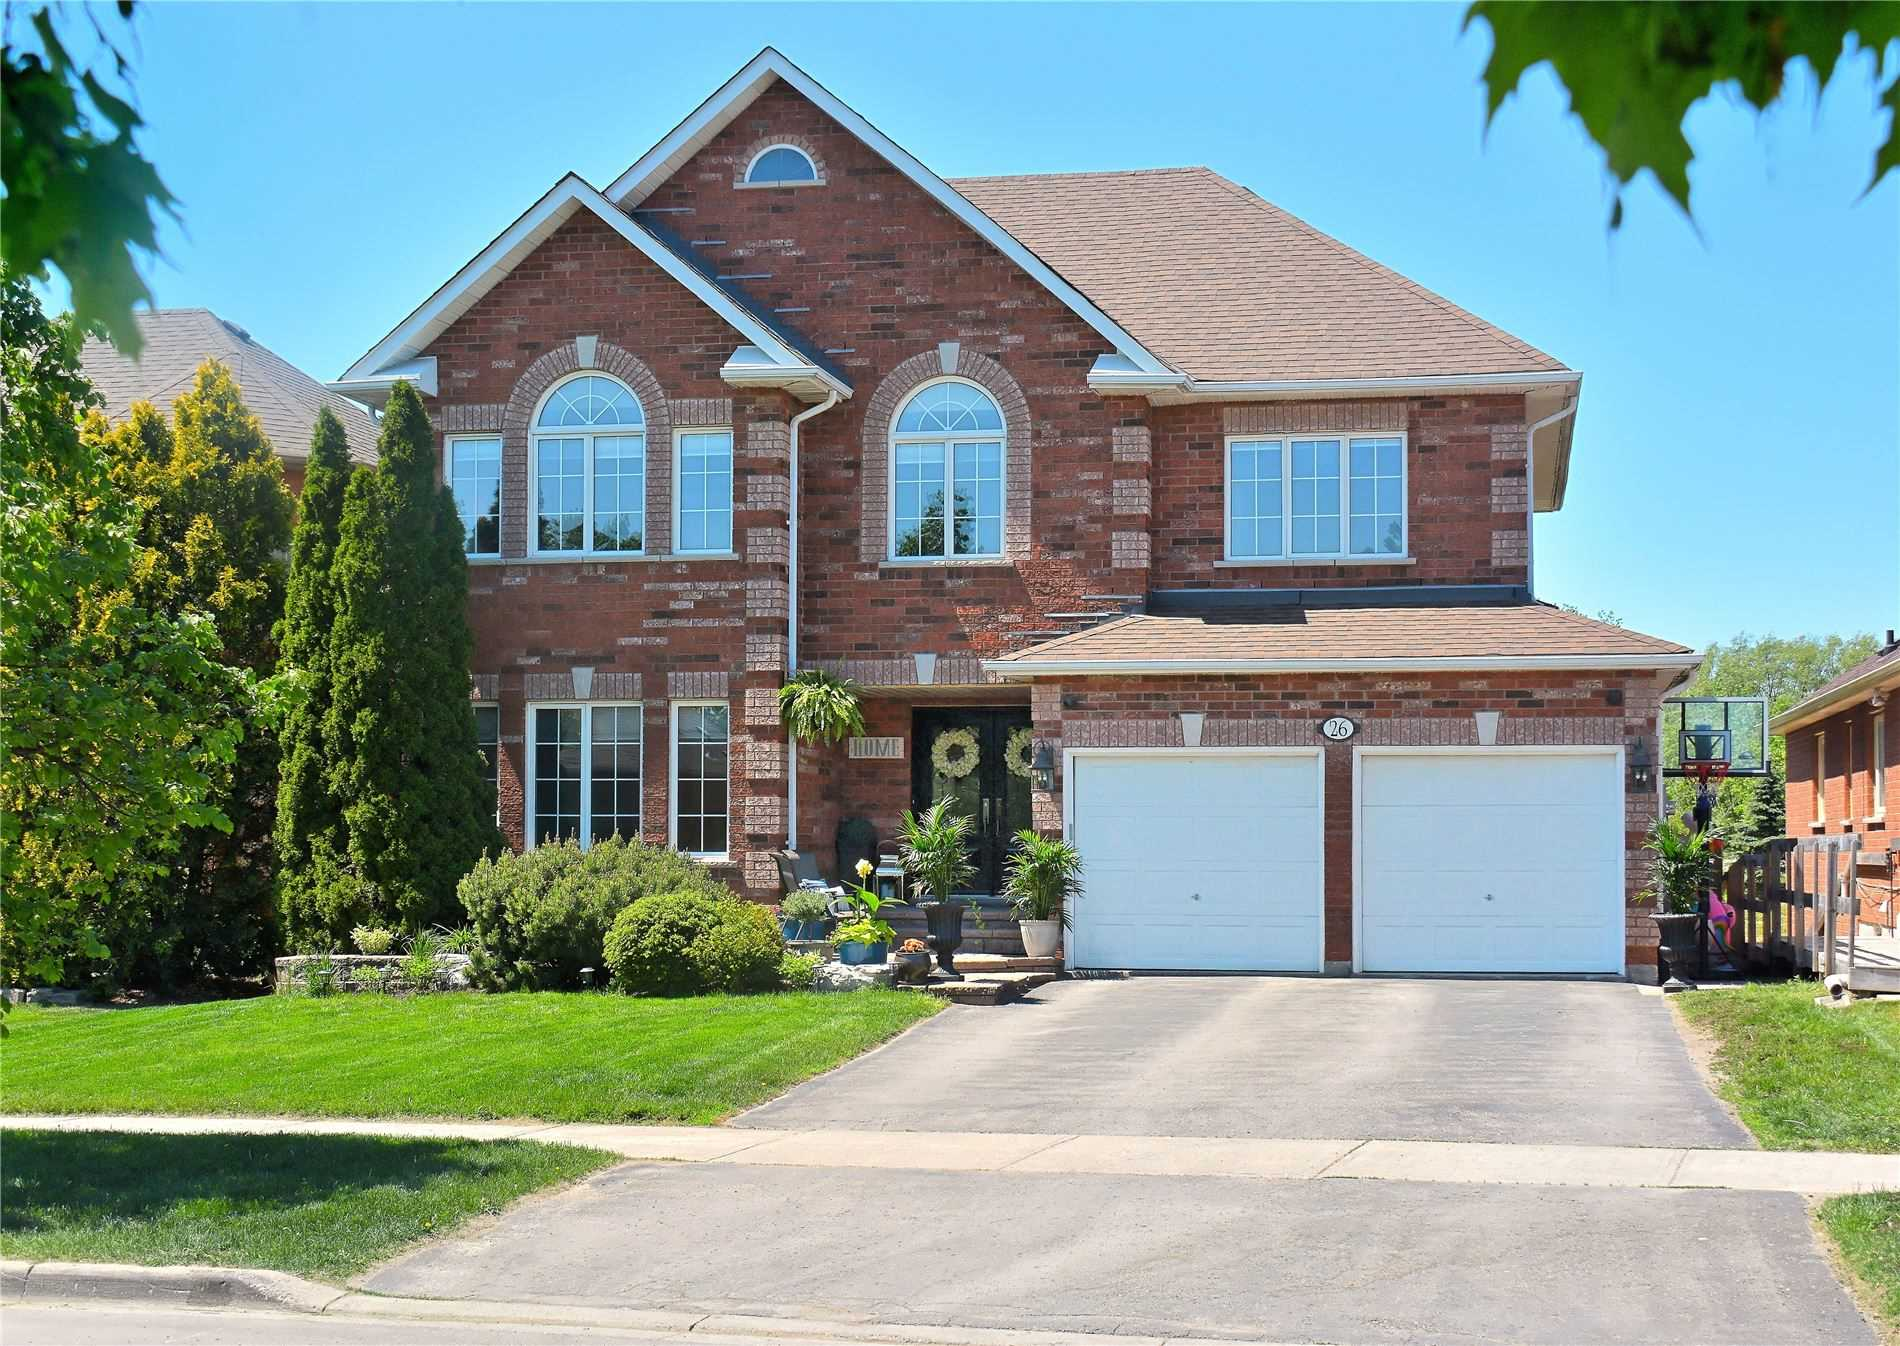 Detached house For Sale In Whitchurch-Stouffville - 26 Thicketwood Blvd, Whitchurch-Stouffville, Ontario, Canada L4A1K1 , 4 Bedrooms Bedrooms, ,4 BathroomsBathrooms,Detached,For Sale,Thicketwood